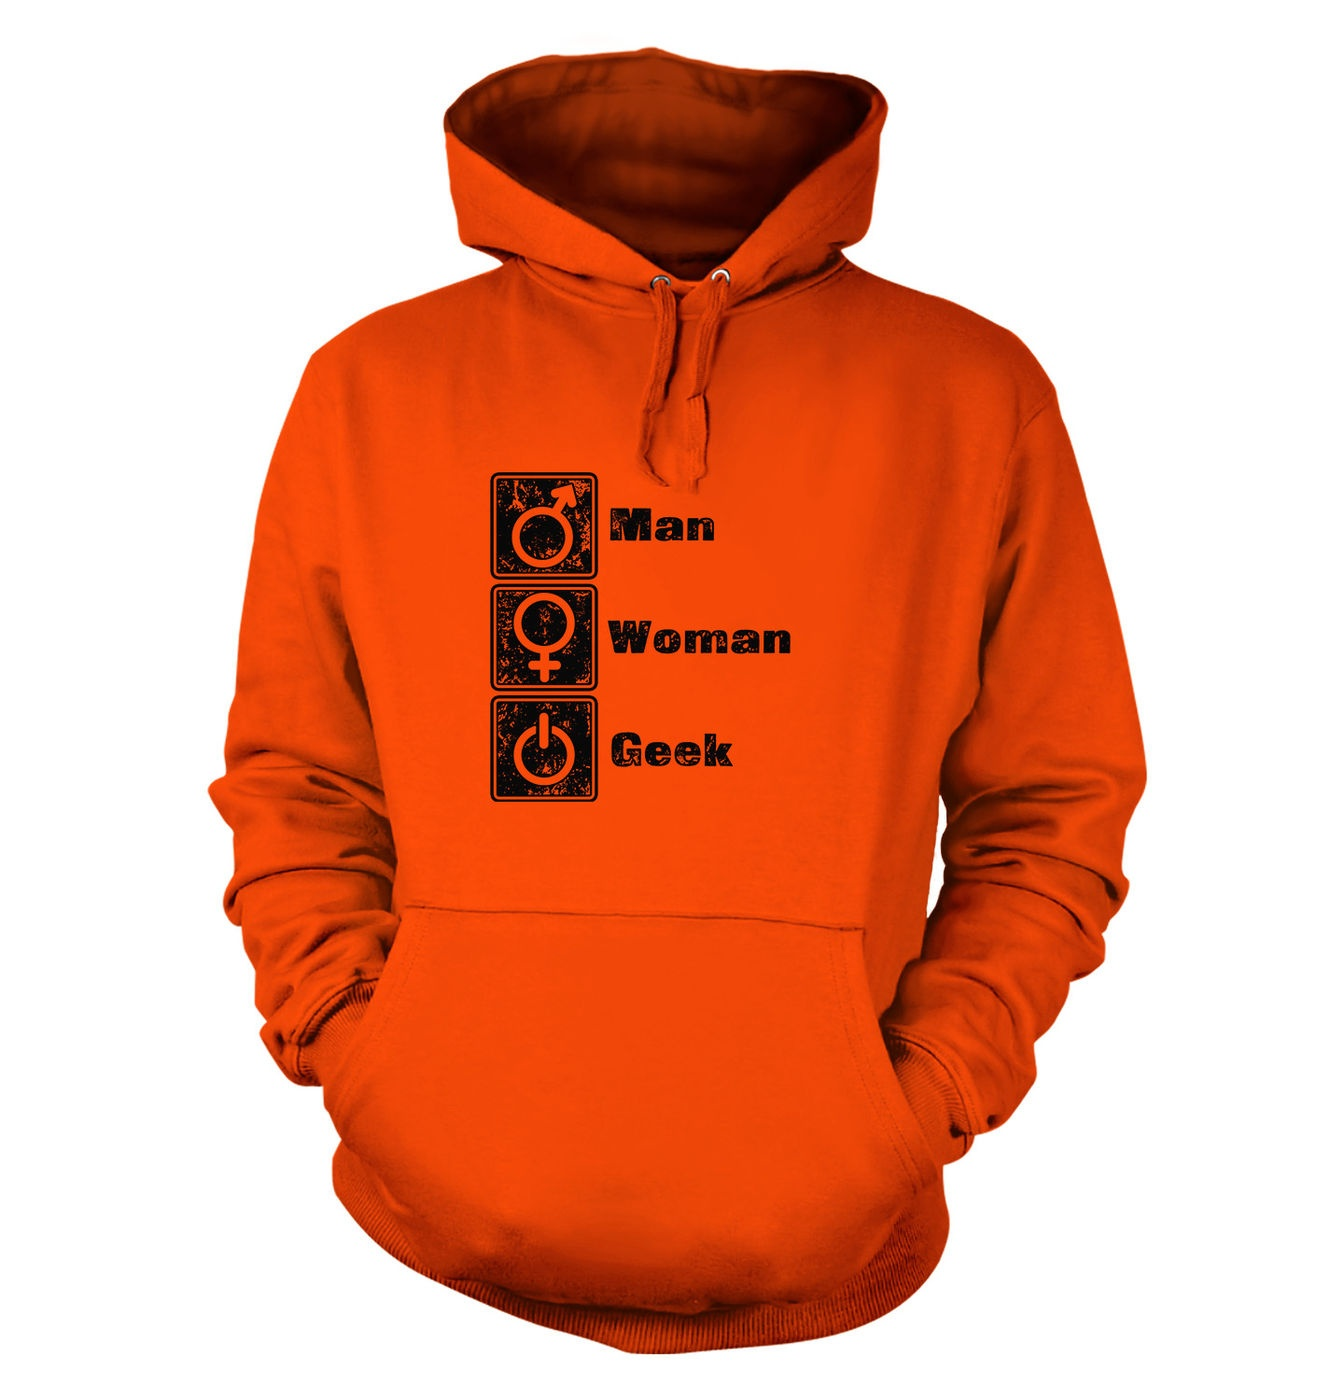 Man Woman Geek hoodie by Something Geeky